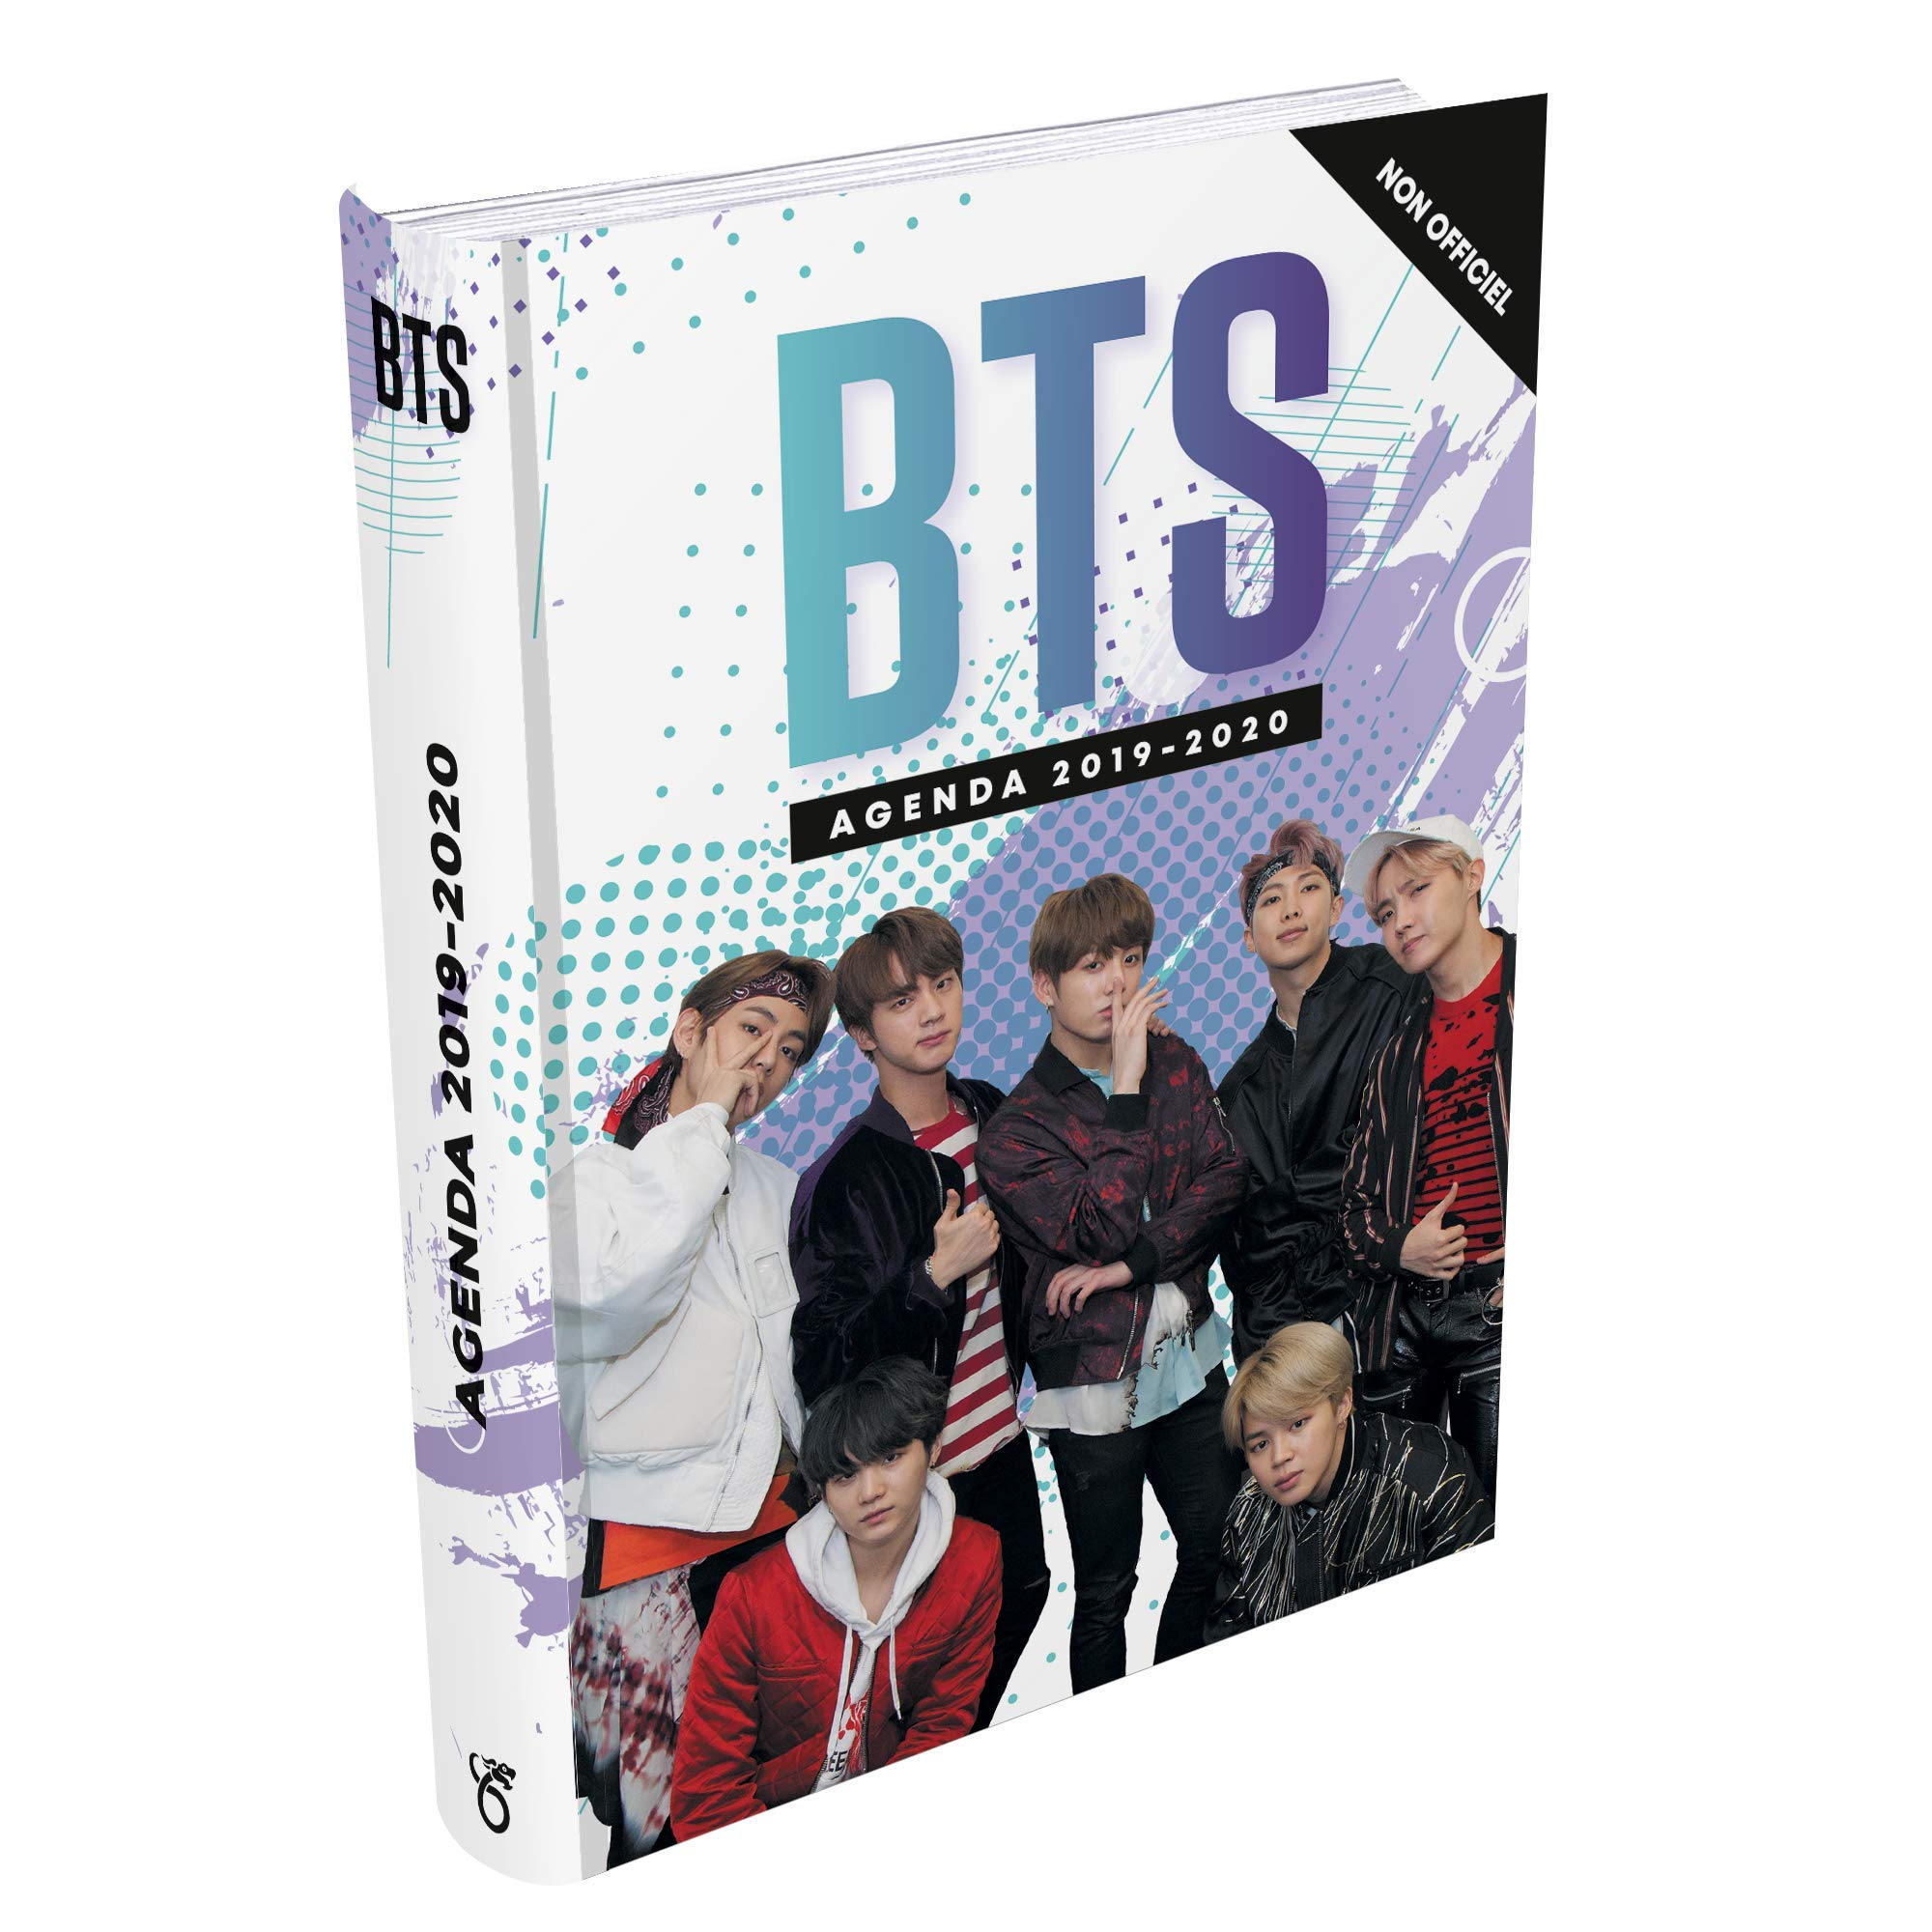 Agenda BTS non officiel: Amazon.es: Dragon dor: Libros en ...